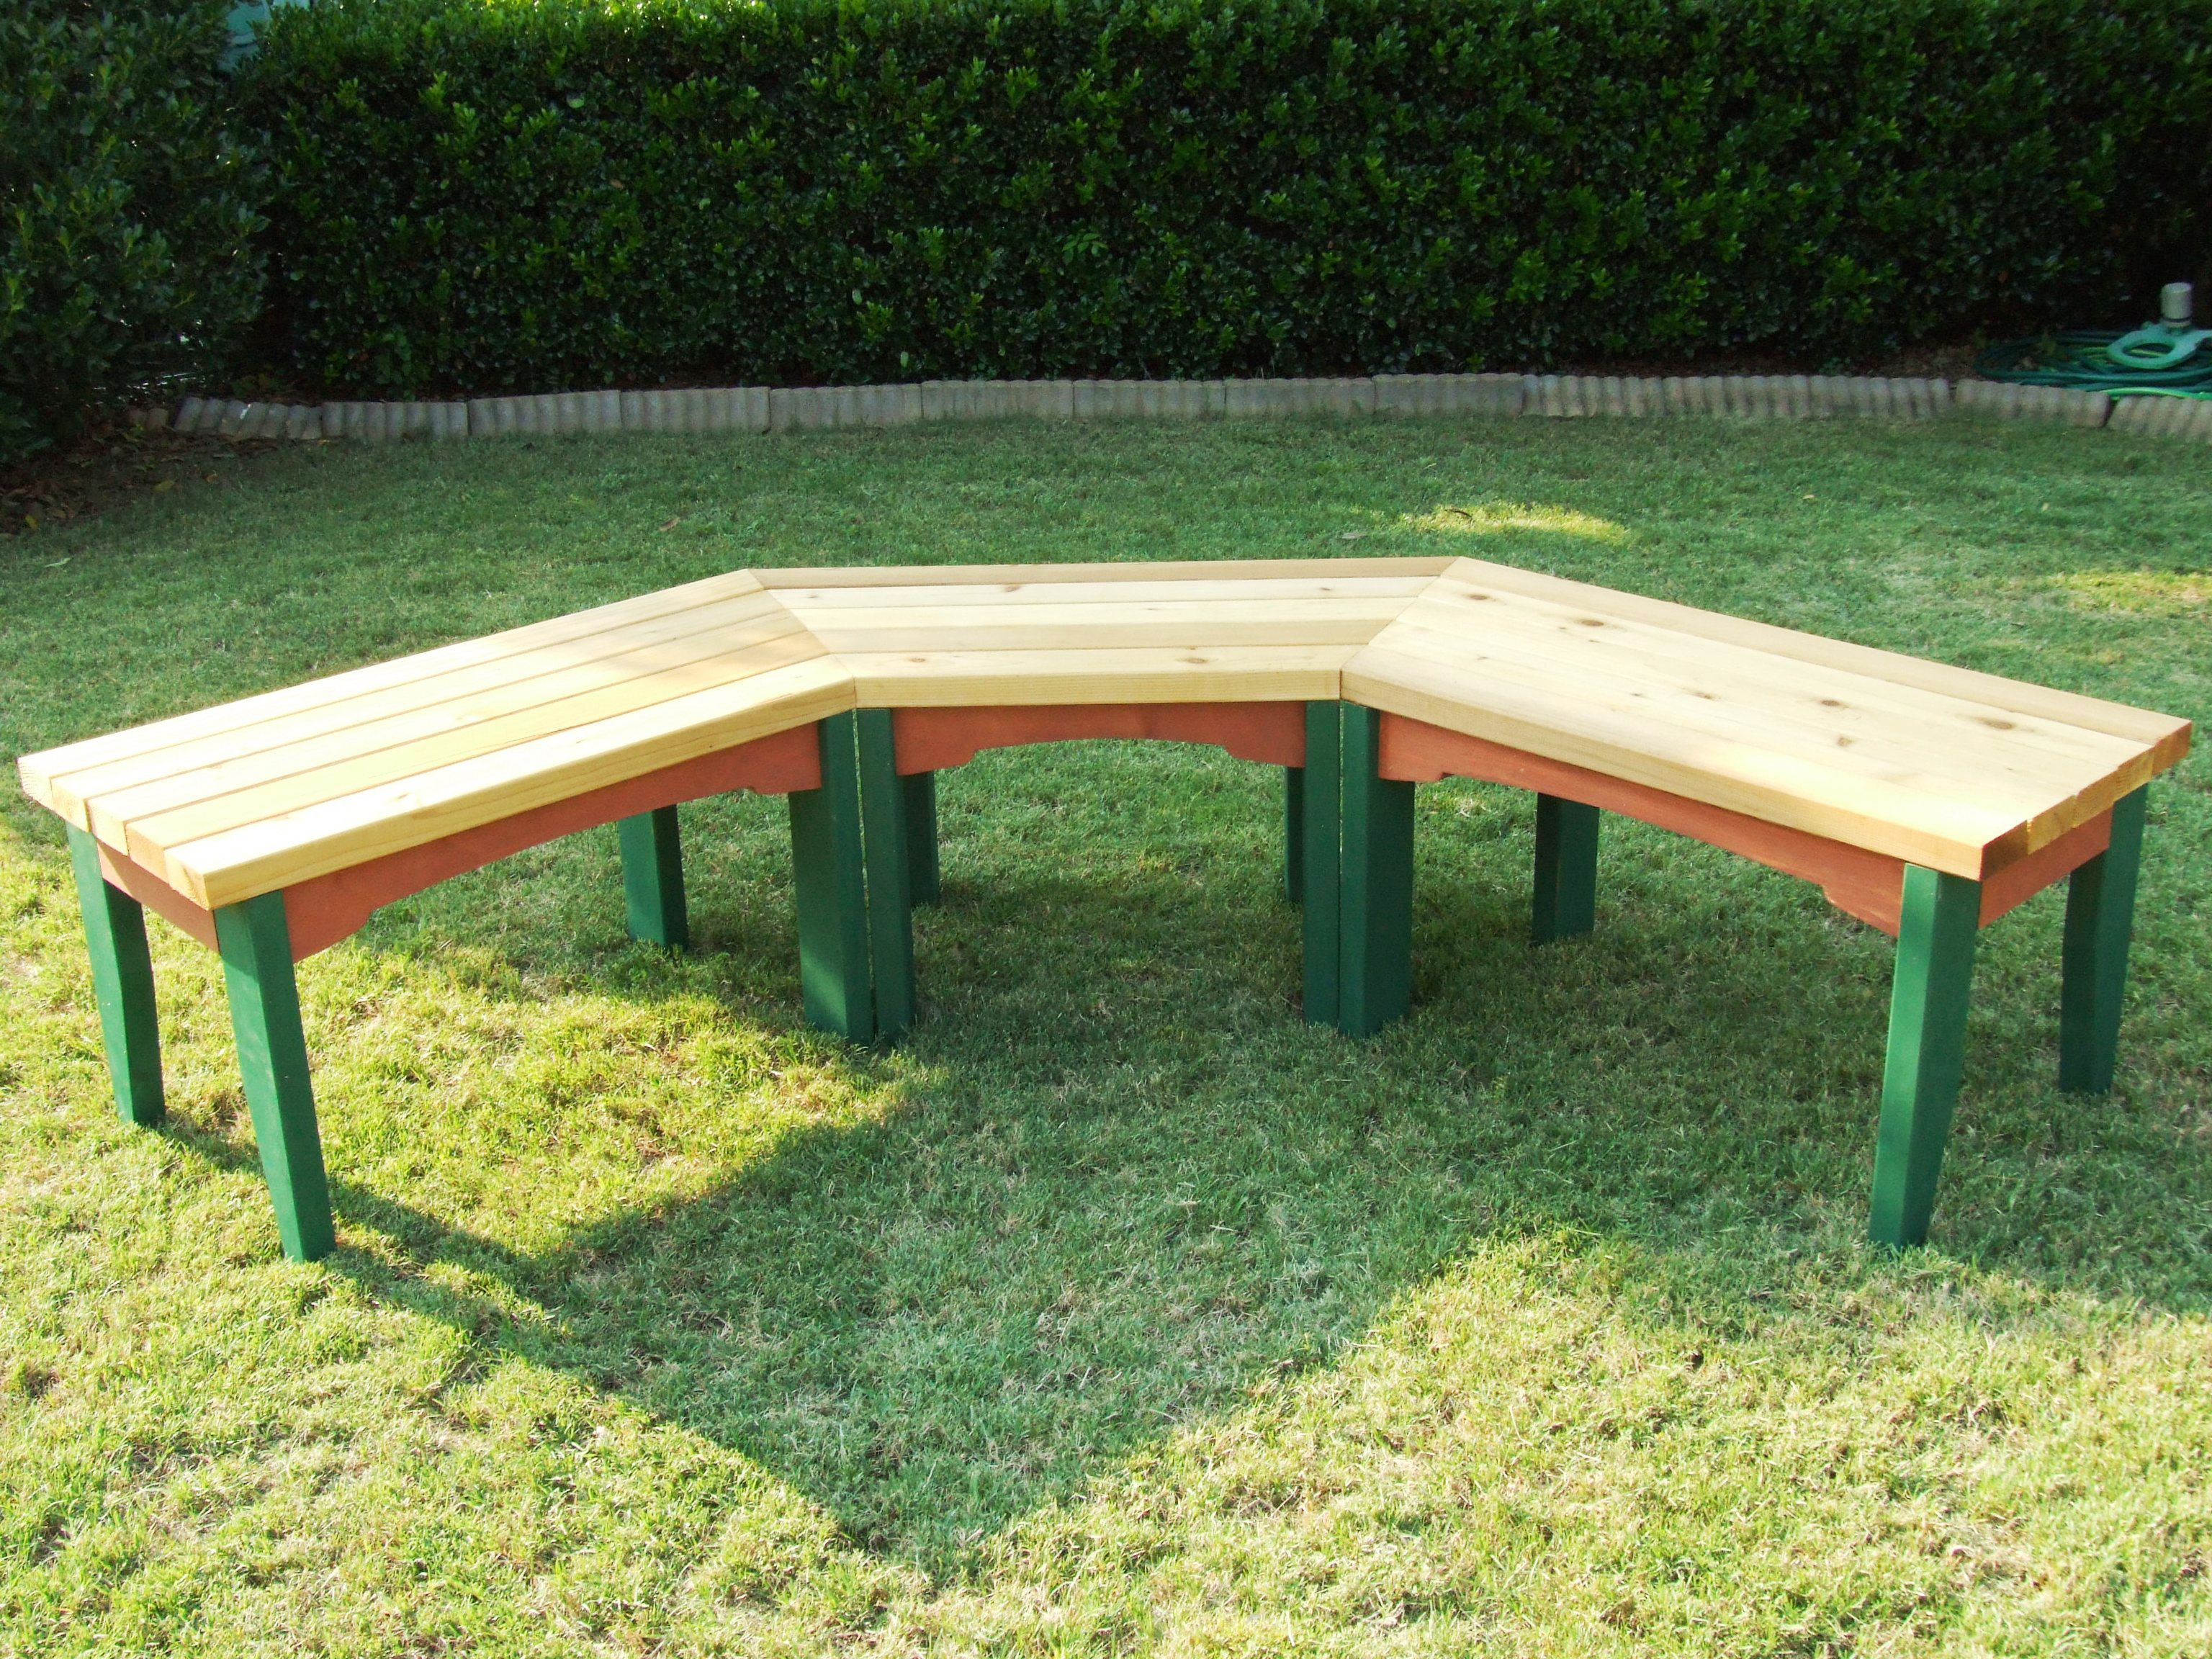 Accessories & Furniture Astonishing Curve Build A Wooden Bench With